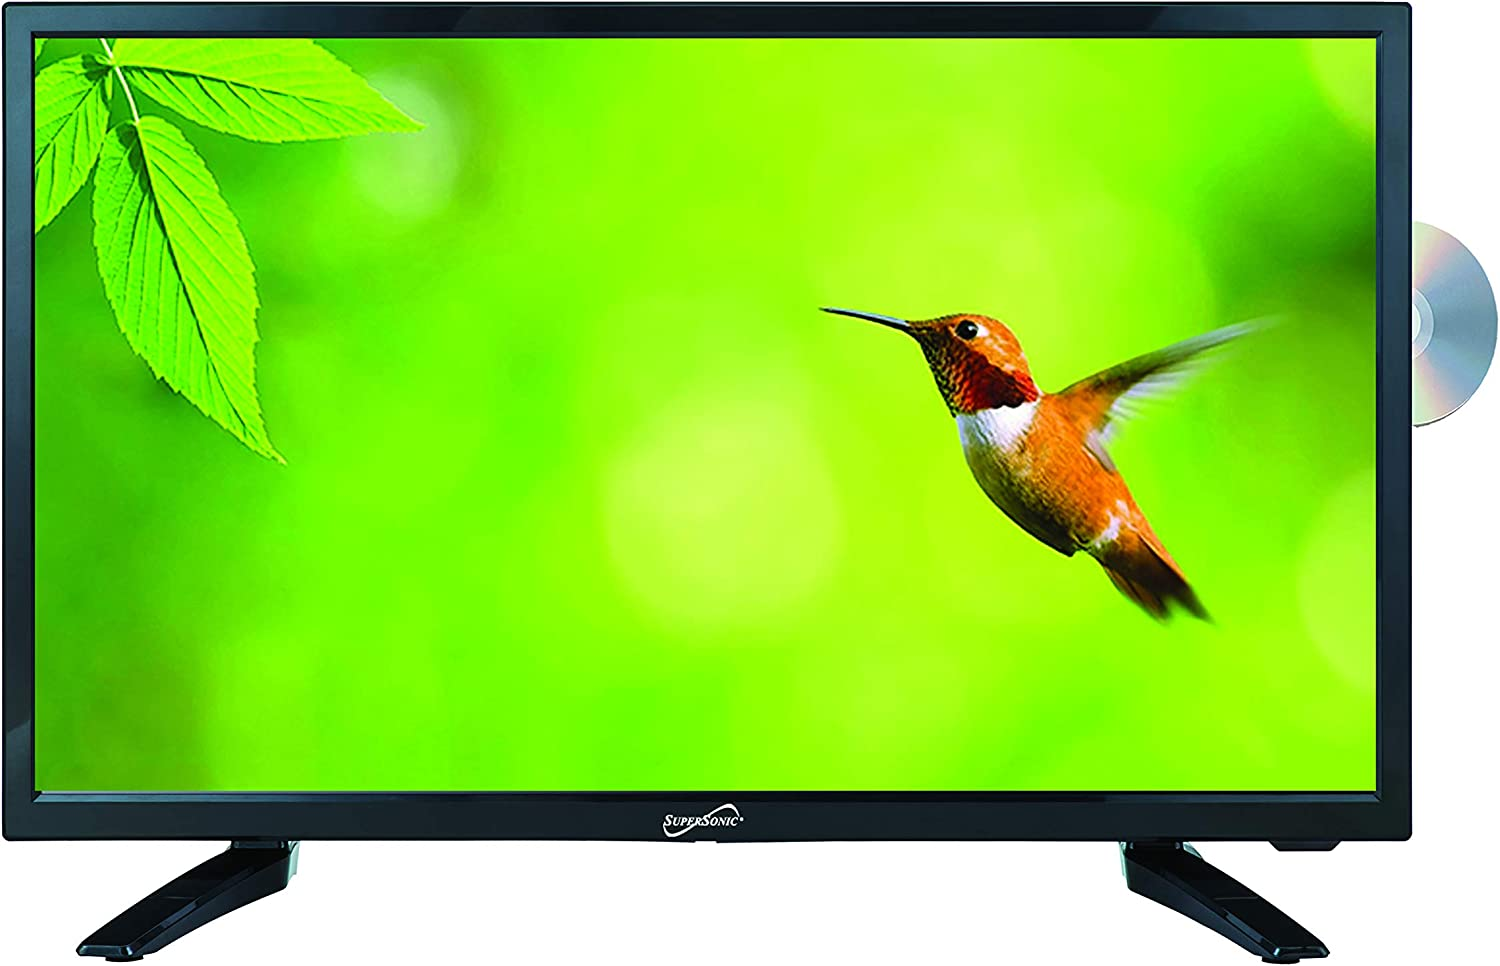 SuperSonic SC-1912 LED Widescreen HDTV Built-in DVD Player with HDMI, USB, SD & AC/DC Input